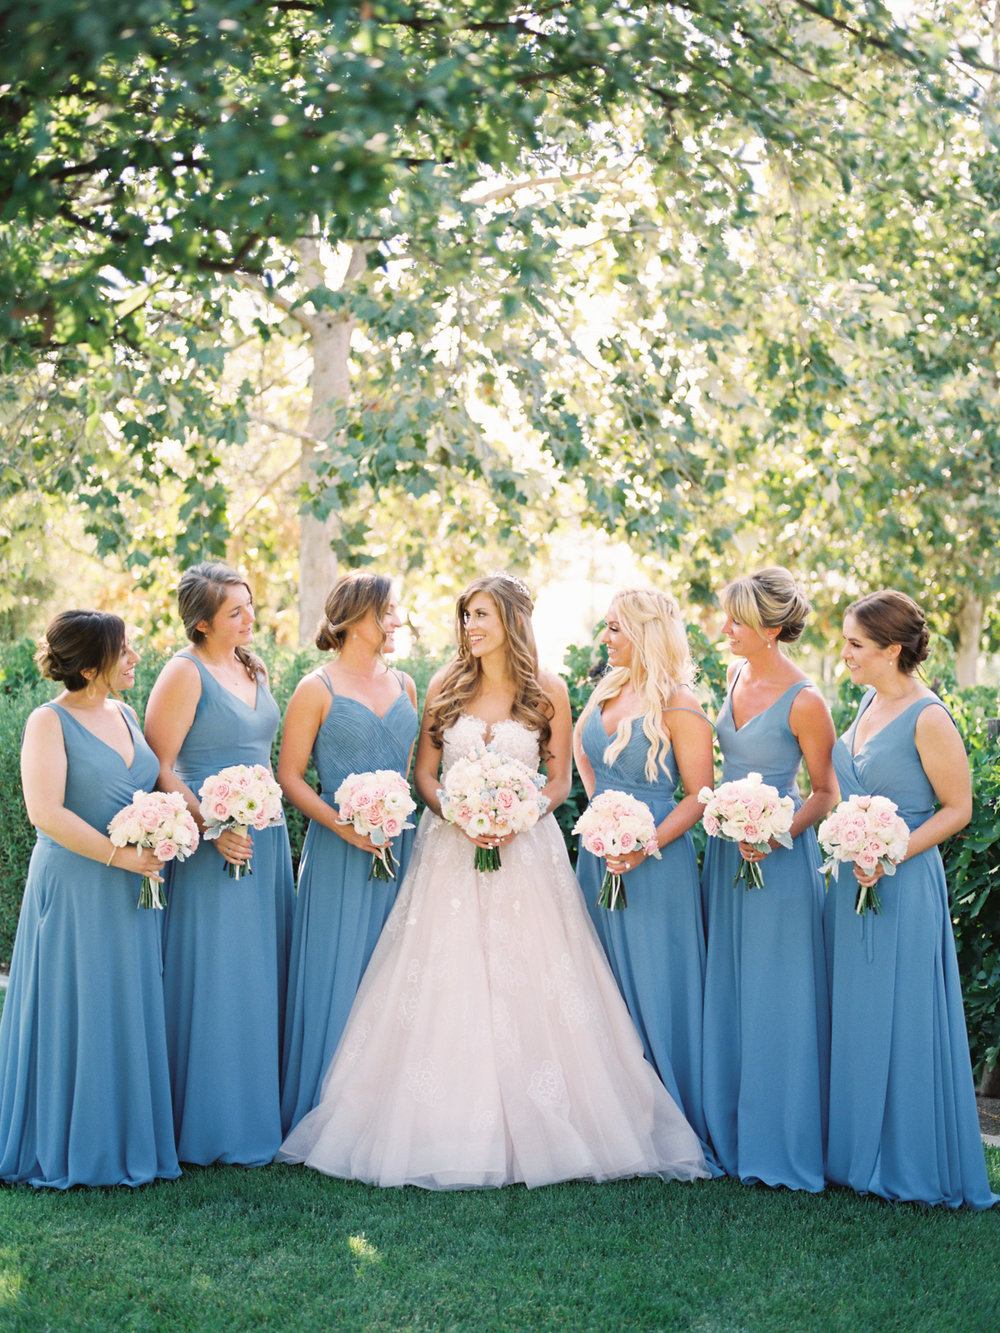 Bride with bridesmaids in blue | Harrison & Jocelyne's gorgeous Temecula wedding at Wiens Family Cellars captured by Betsy & John Photography